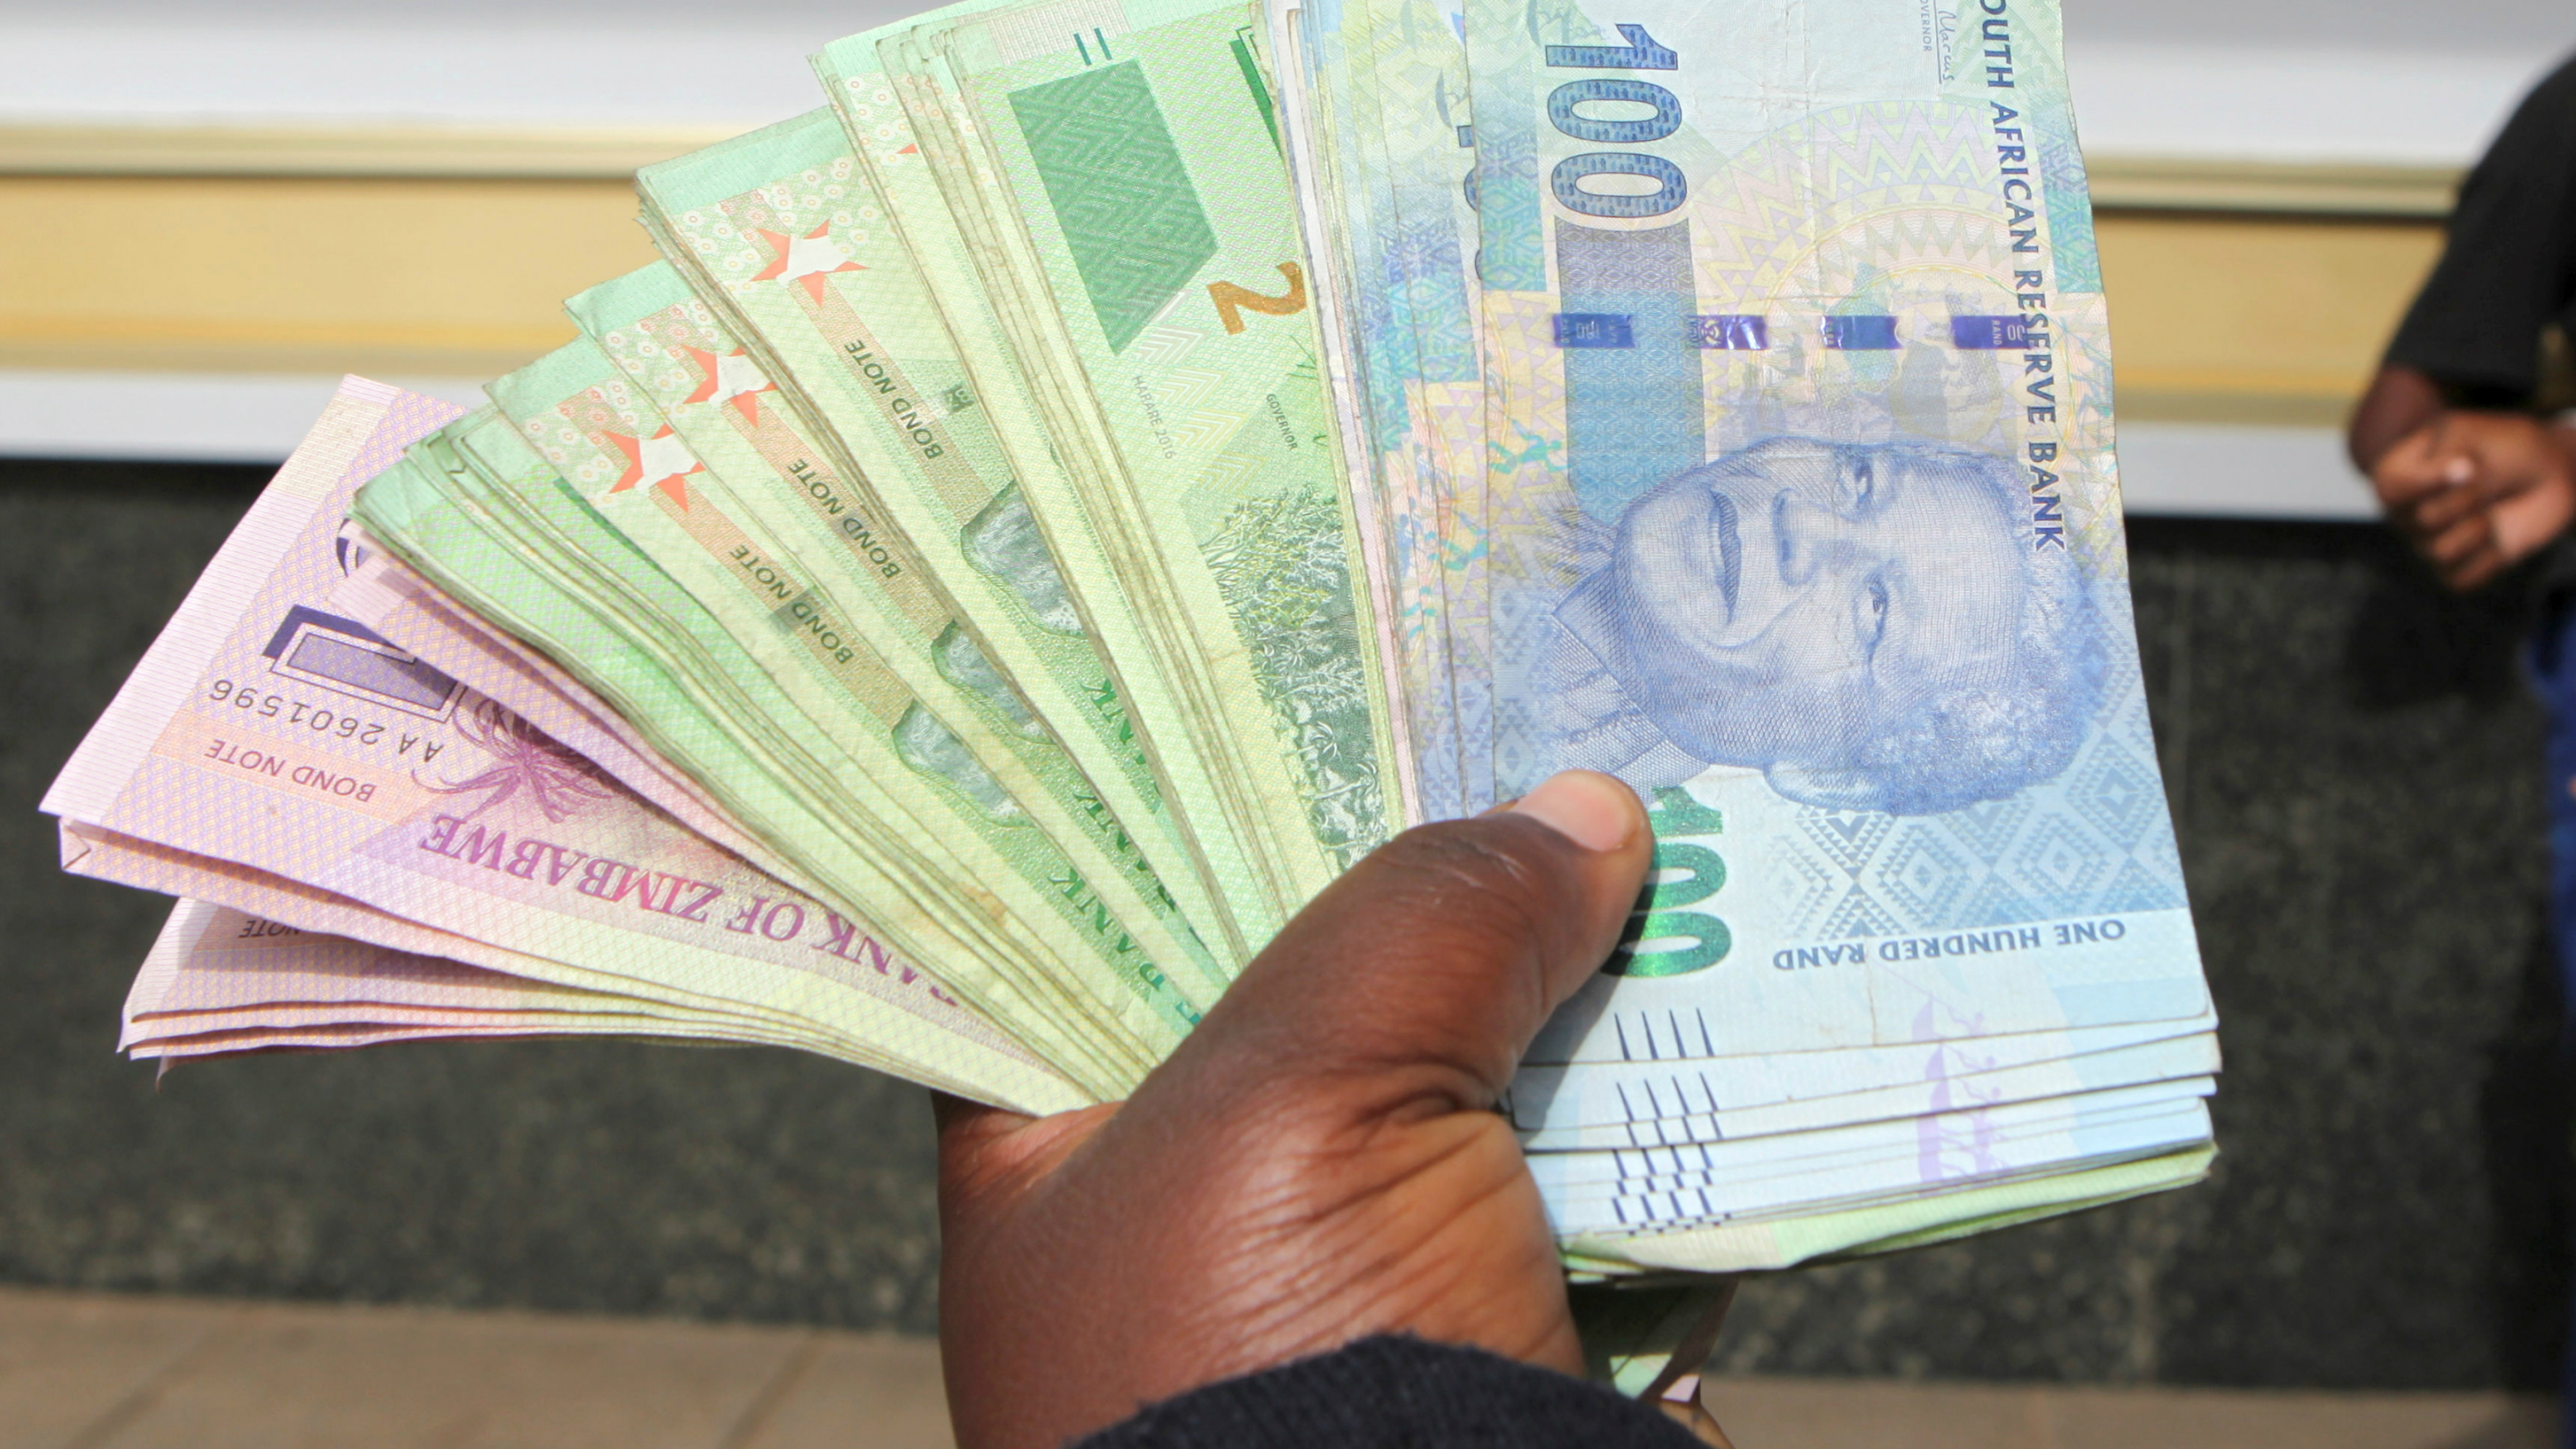 Remittances To Africa Cost Far Too Much More Compeion Would Change That